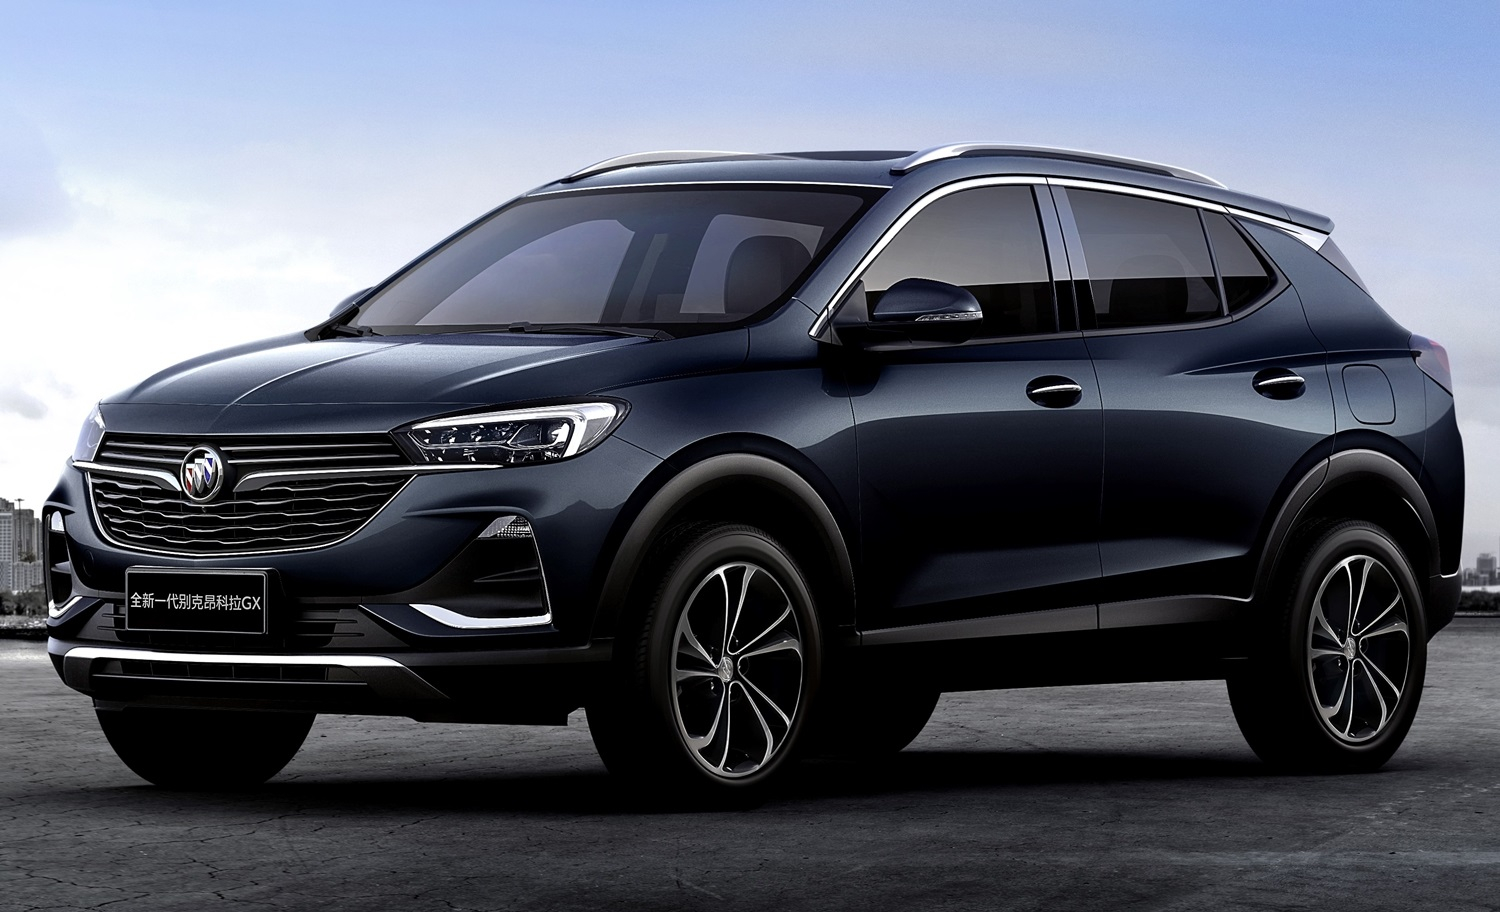 New Buick Encore Gx Images Released: Photo Gallery | Gm Where Is The New 2022 Buick Encore Gx Built